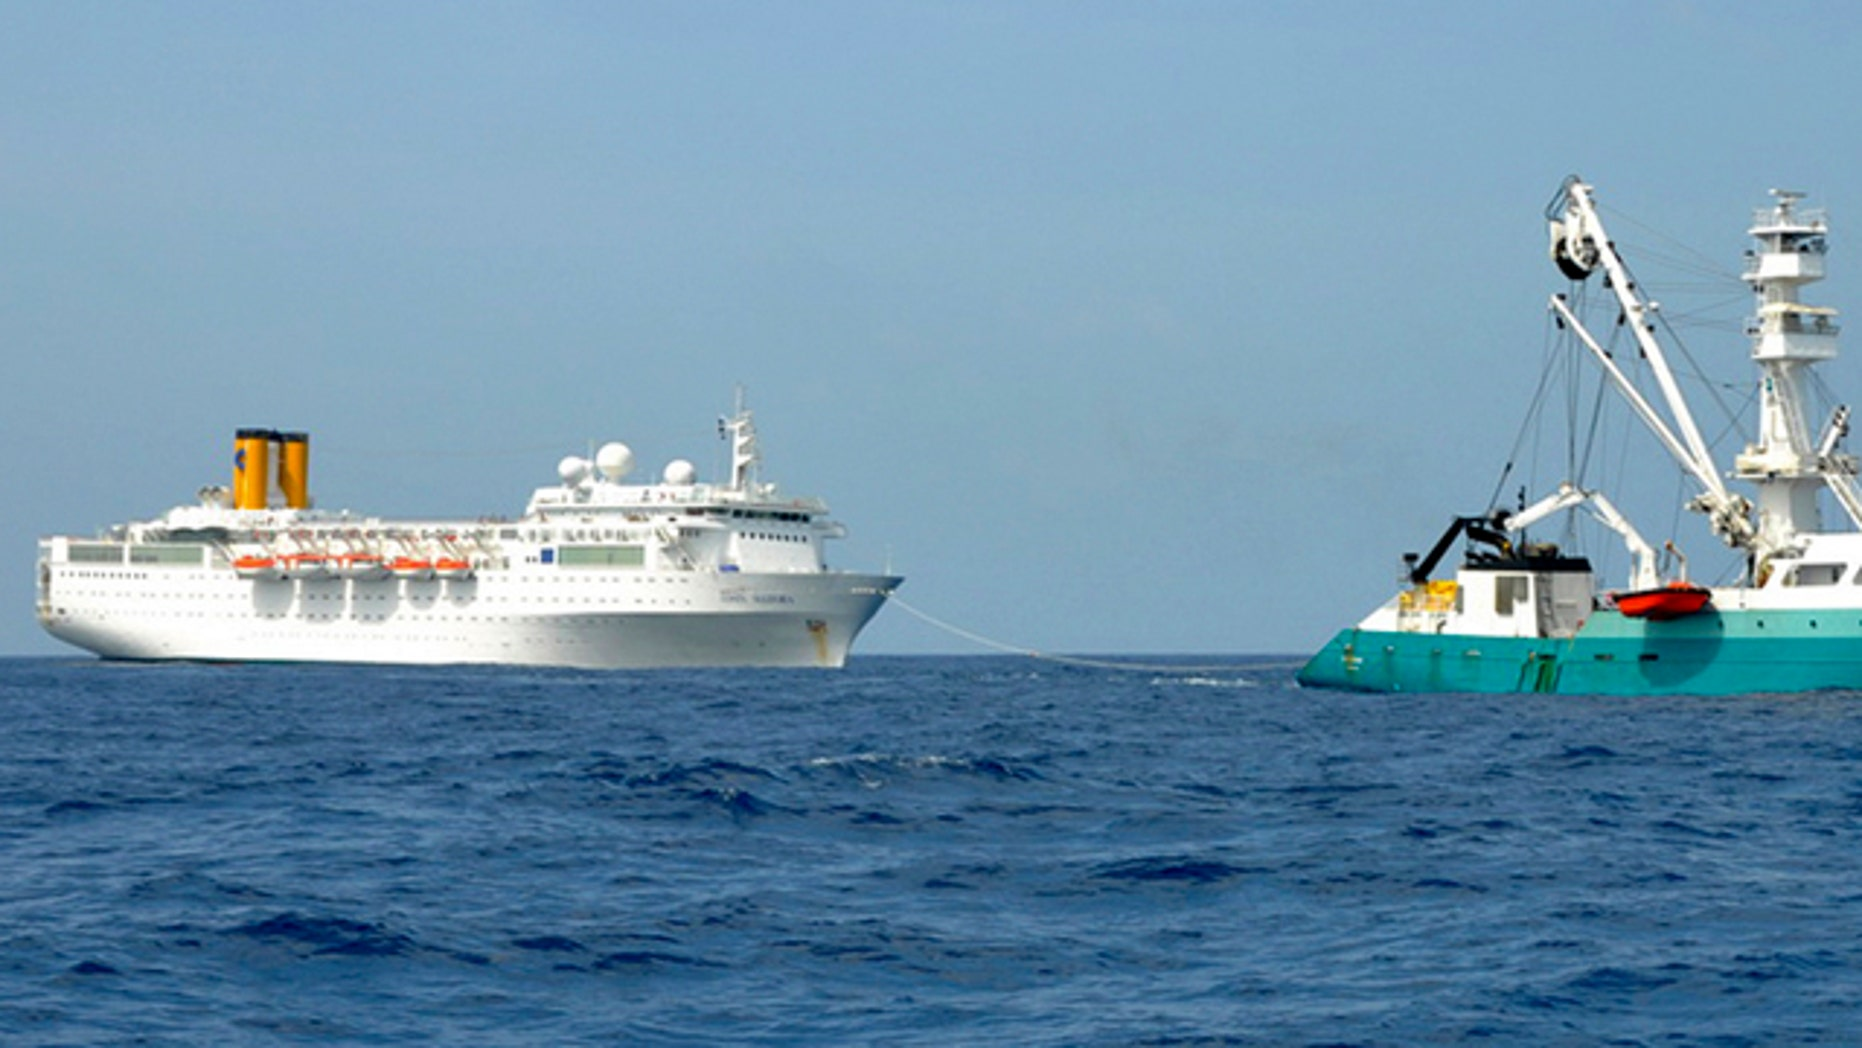 Feb. 28: In this photo taken by a member of French fishing vessel, The Talenduic, and provided by the Prefecture of the Reunion Island, shows the Italian cruise ship, The Costa Allegra, left, being towed by French fishing vessel, The Trevignon, in the Indian Ocean.